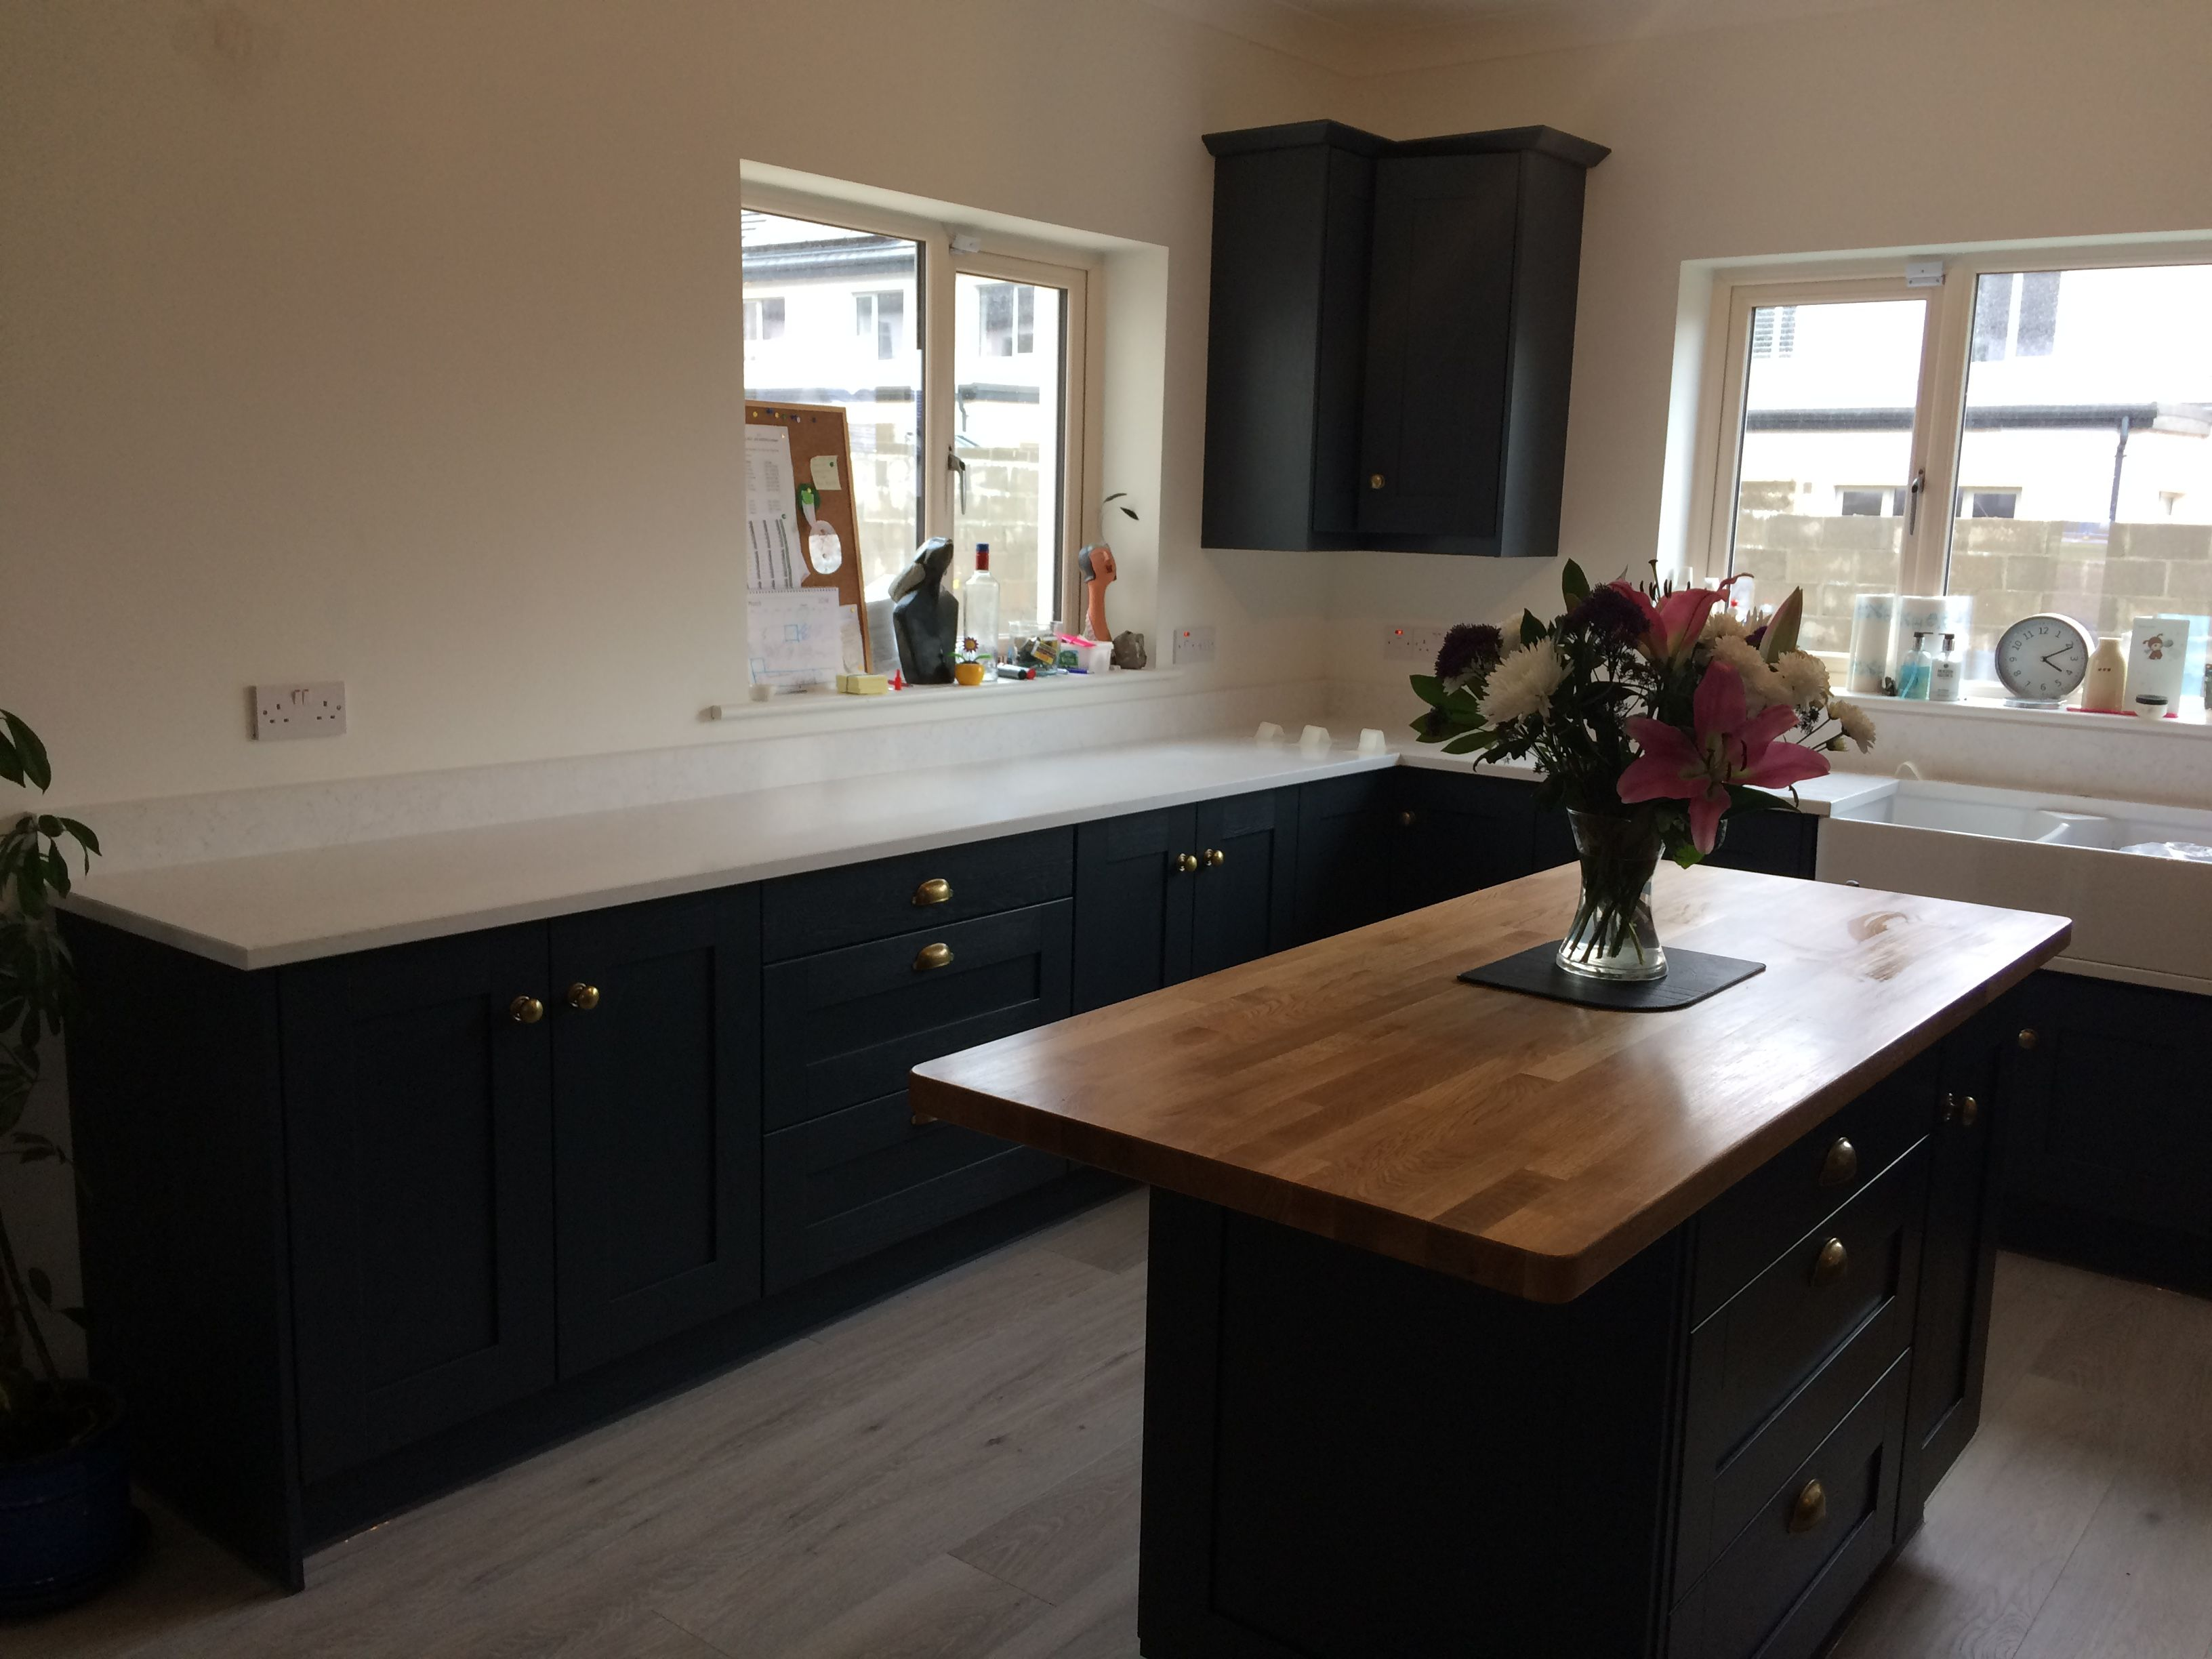 Best Farrow And Ball Kitchen In Railings Farrow And Ball 400 x 300